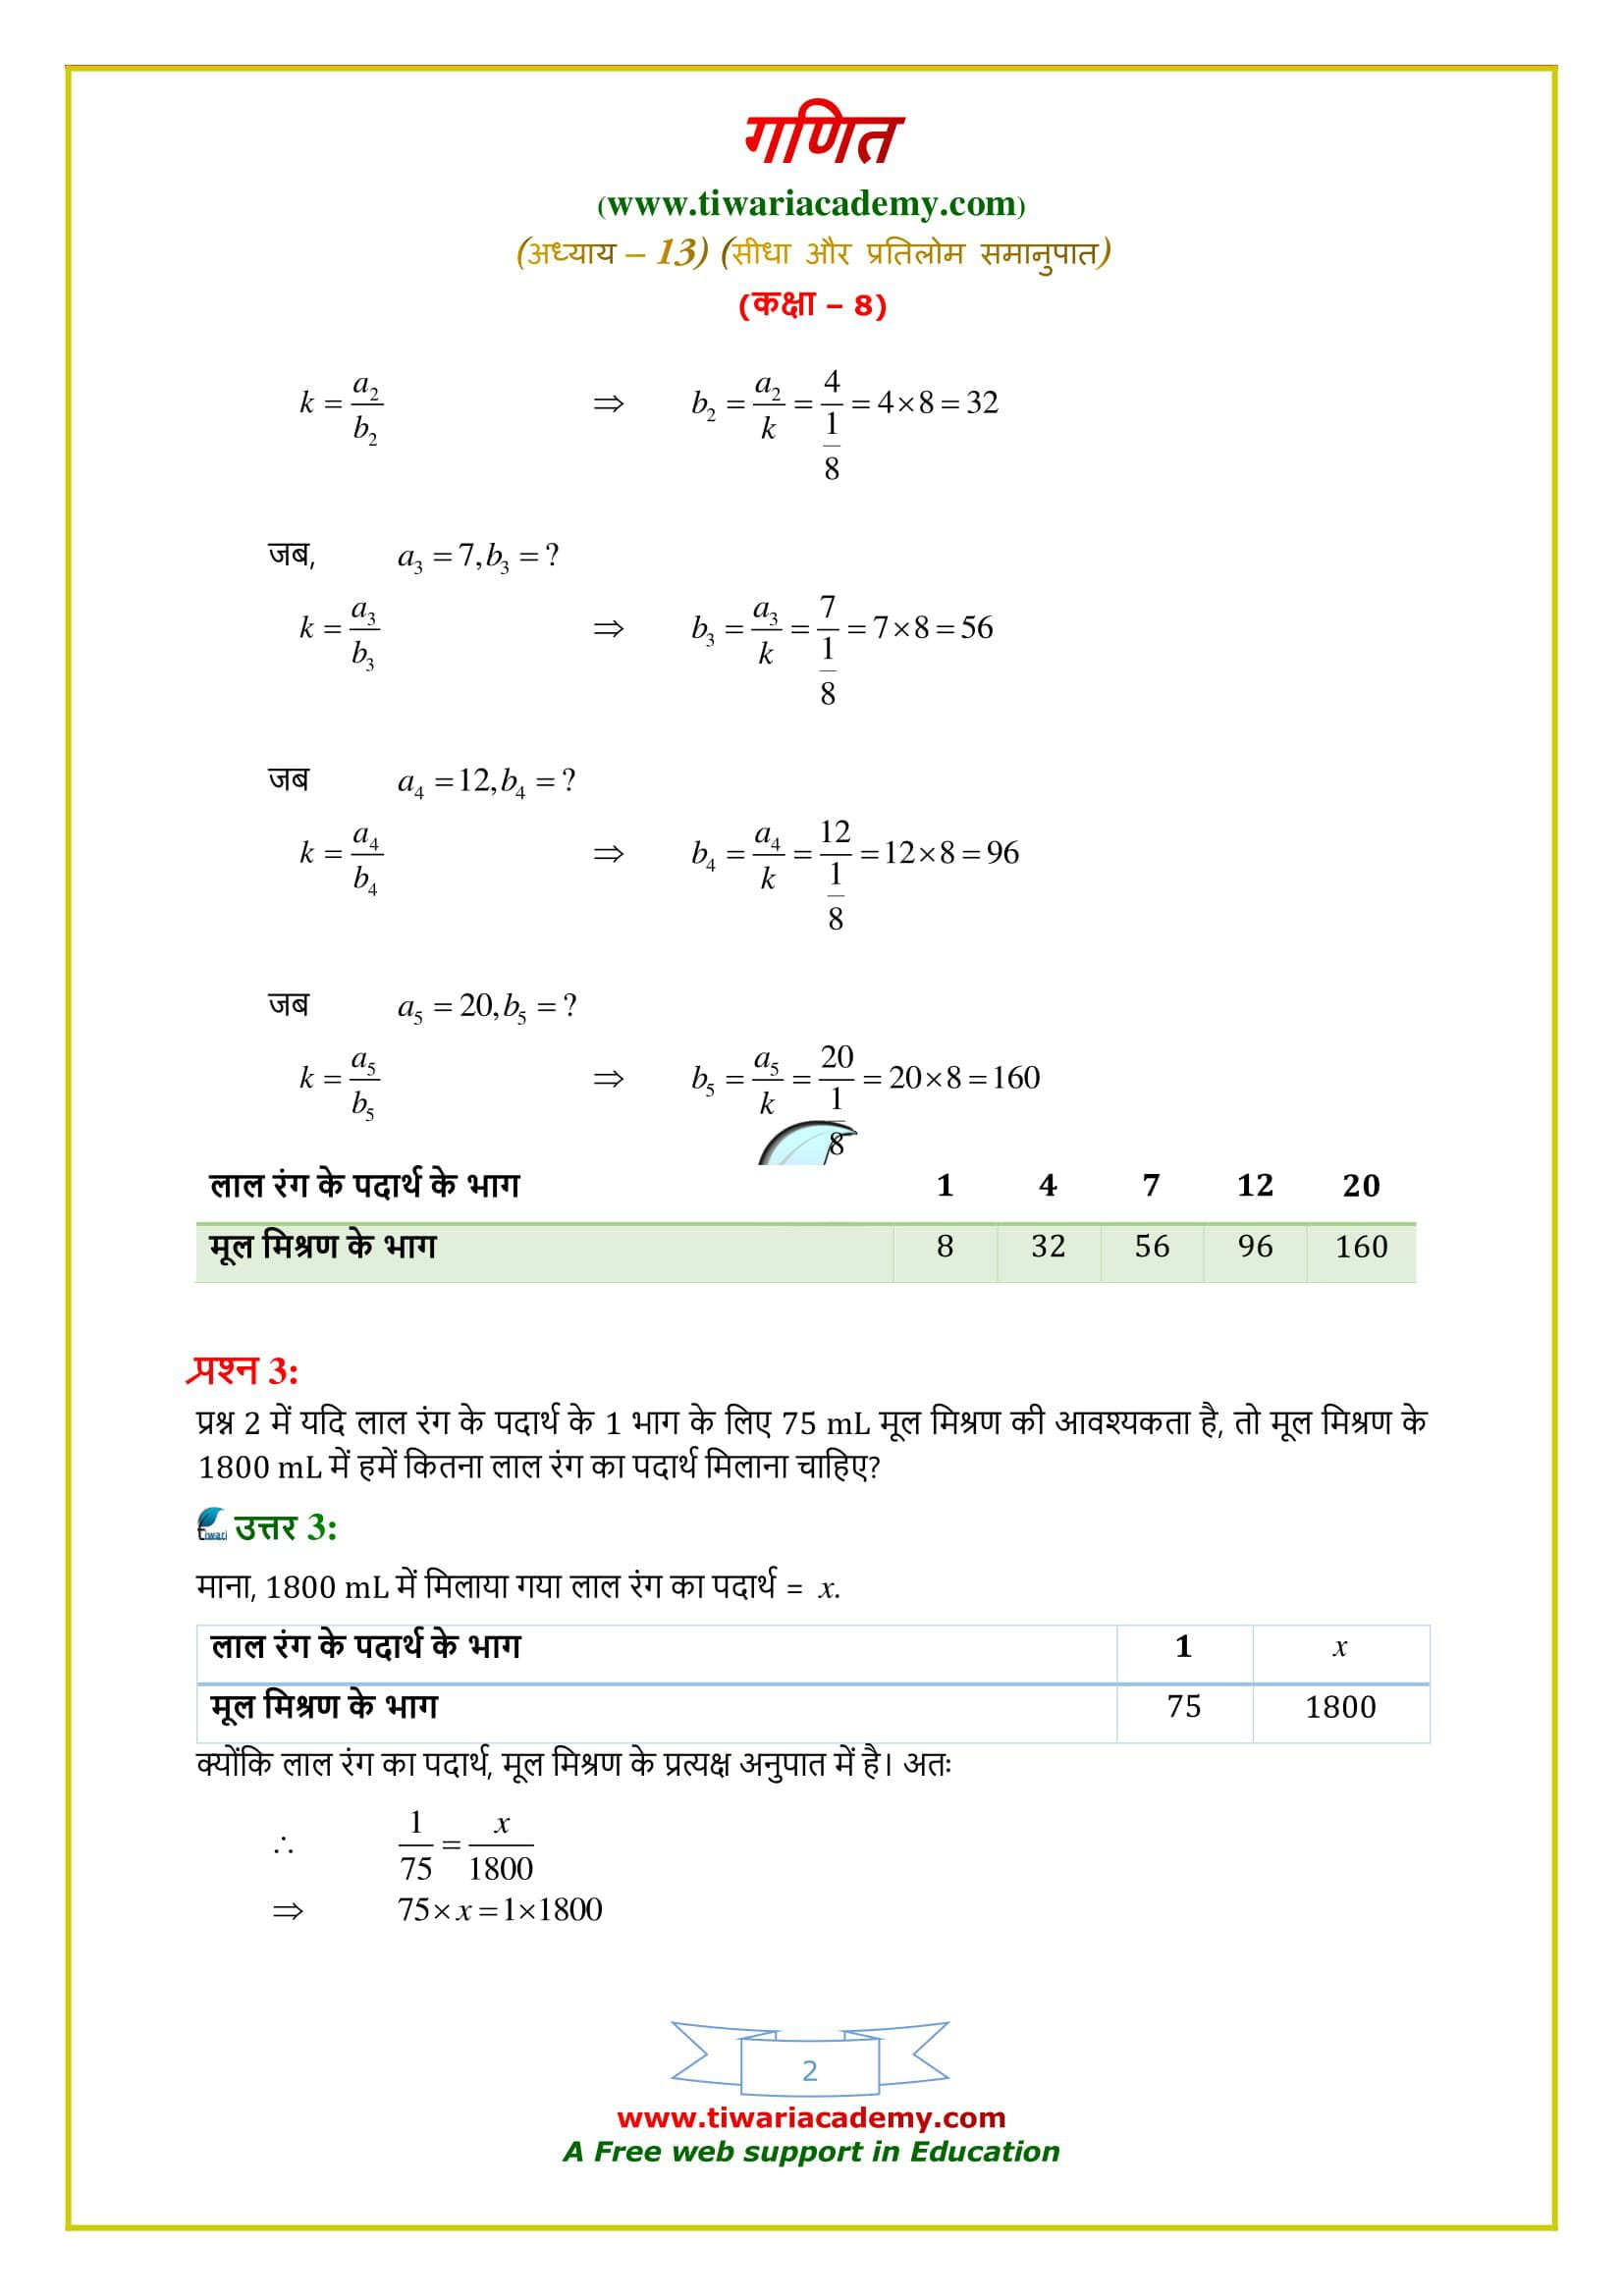 8 Maths Exercise 13.1 solutions updated for 2018-19